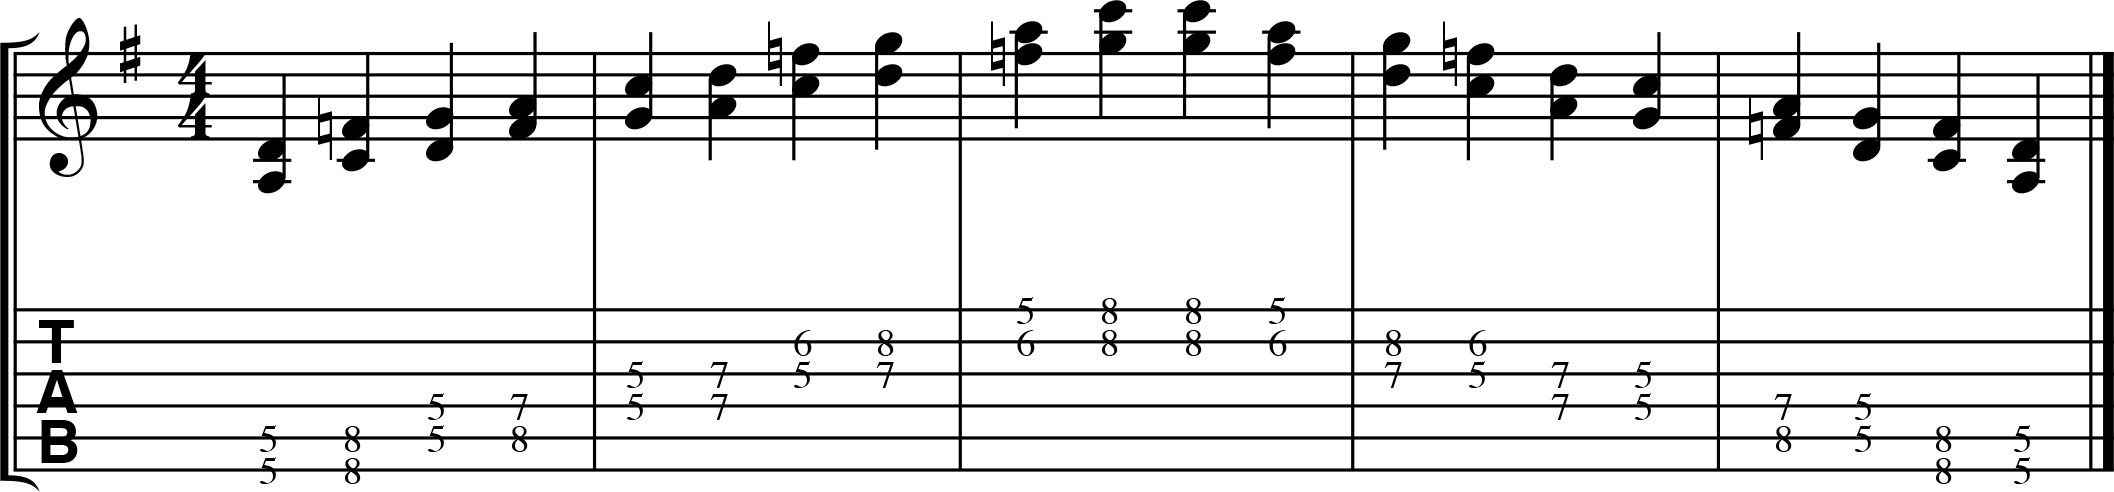 playing double stops on guitar